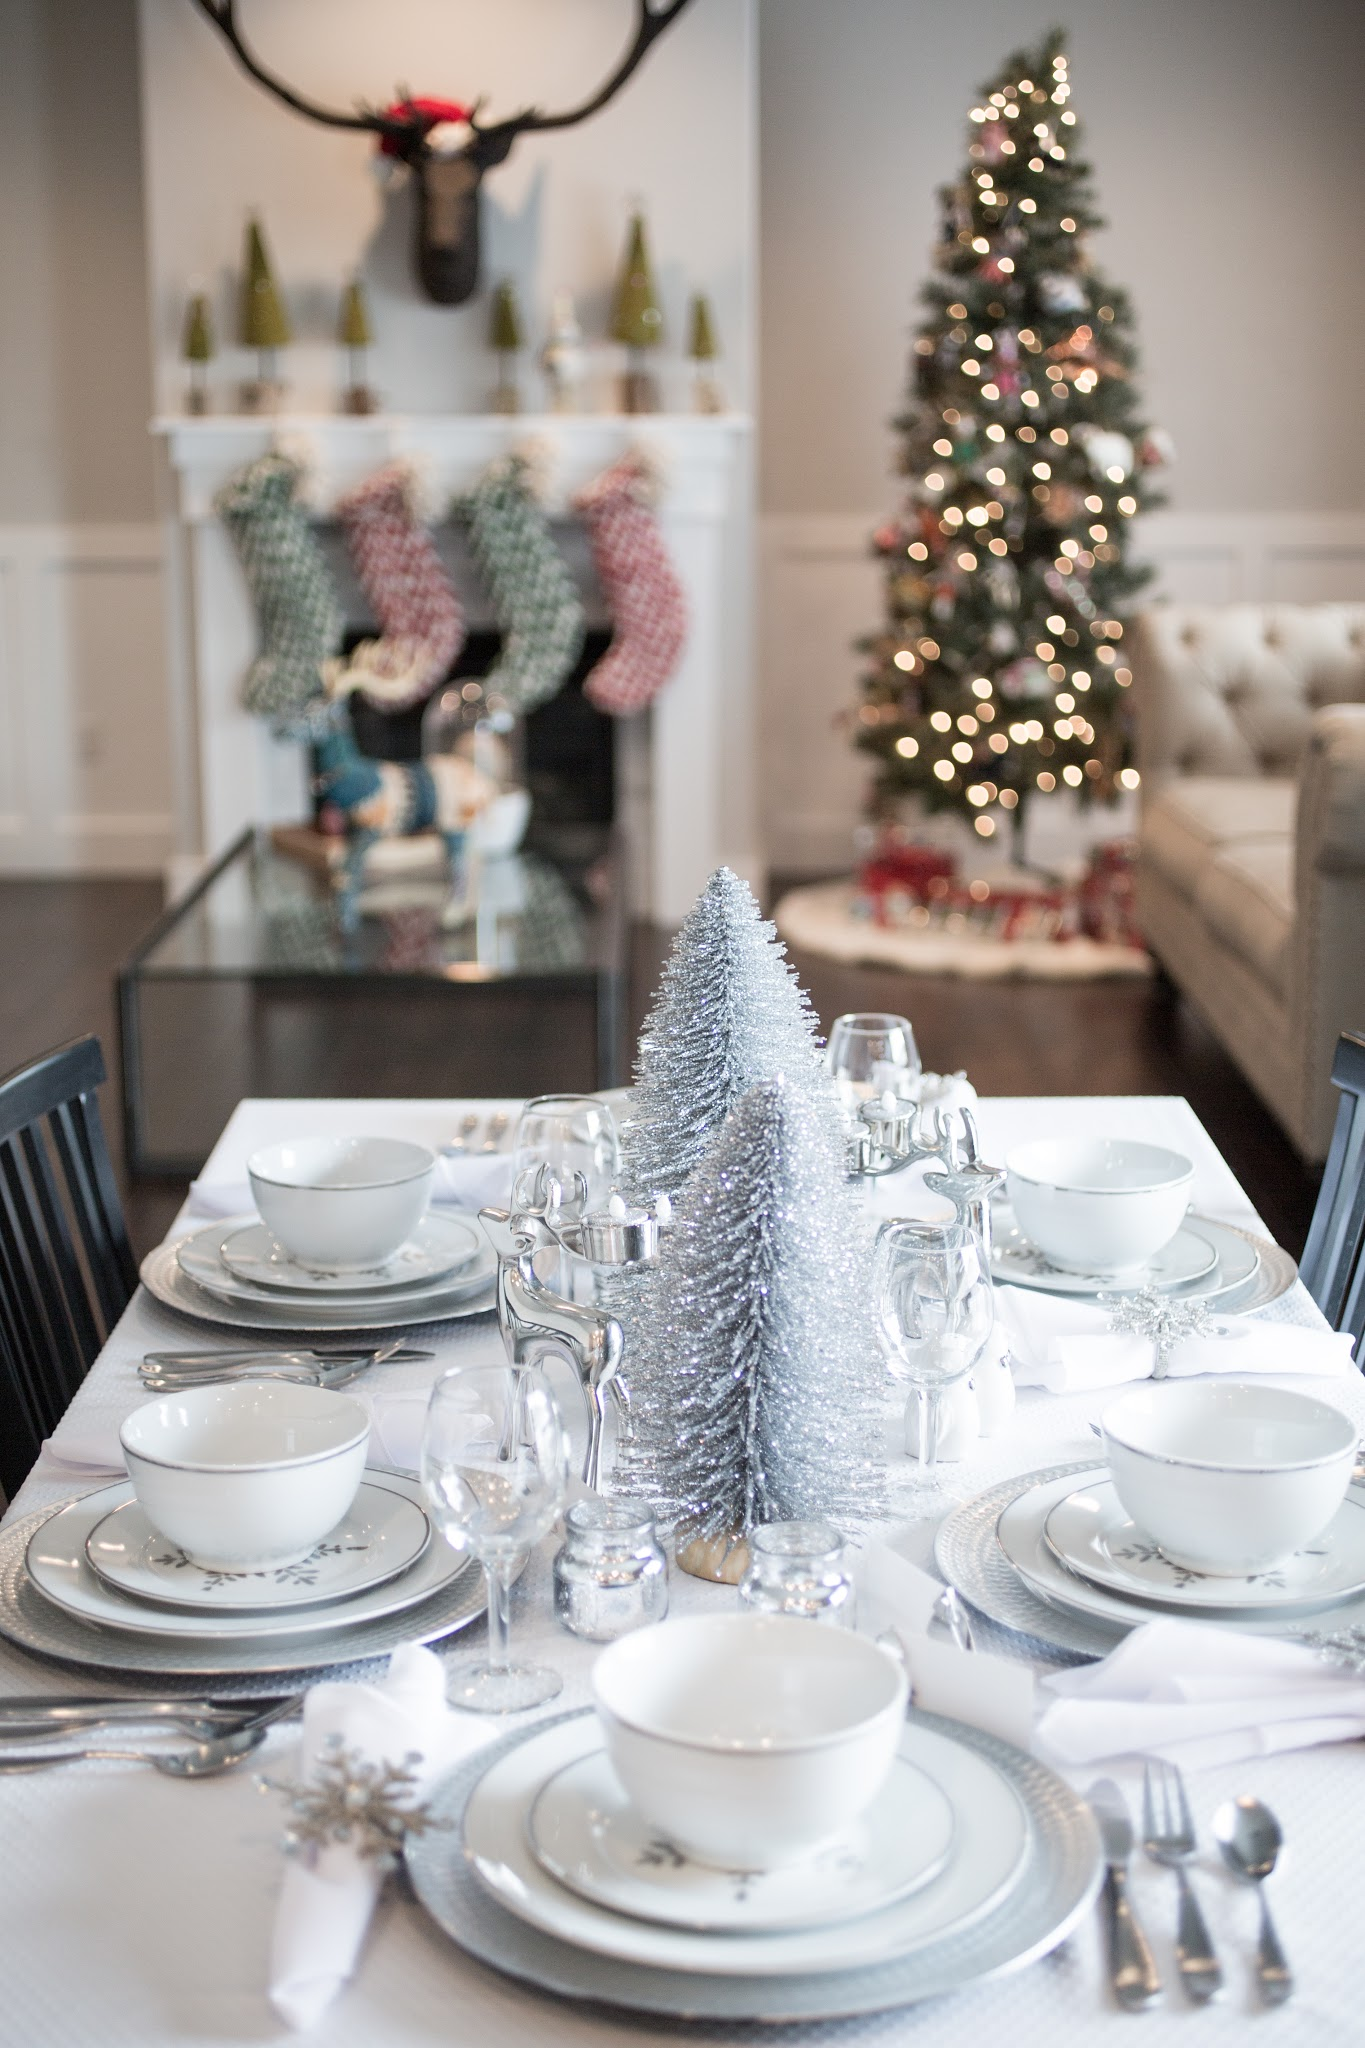 Setting up the Christmas Table Decorations | Kelsey Bang